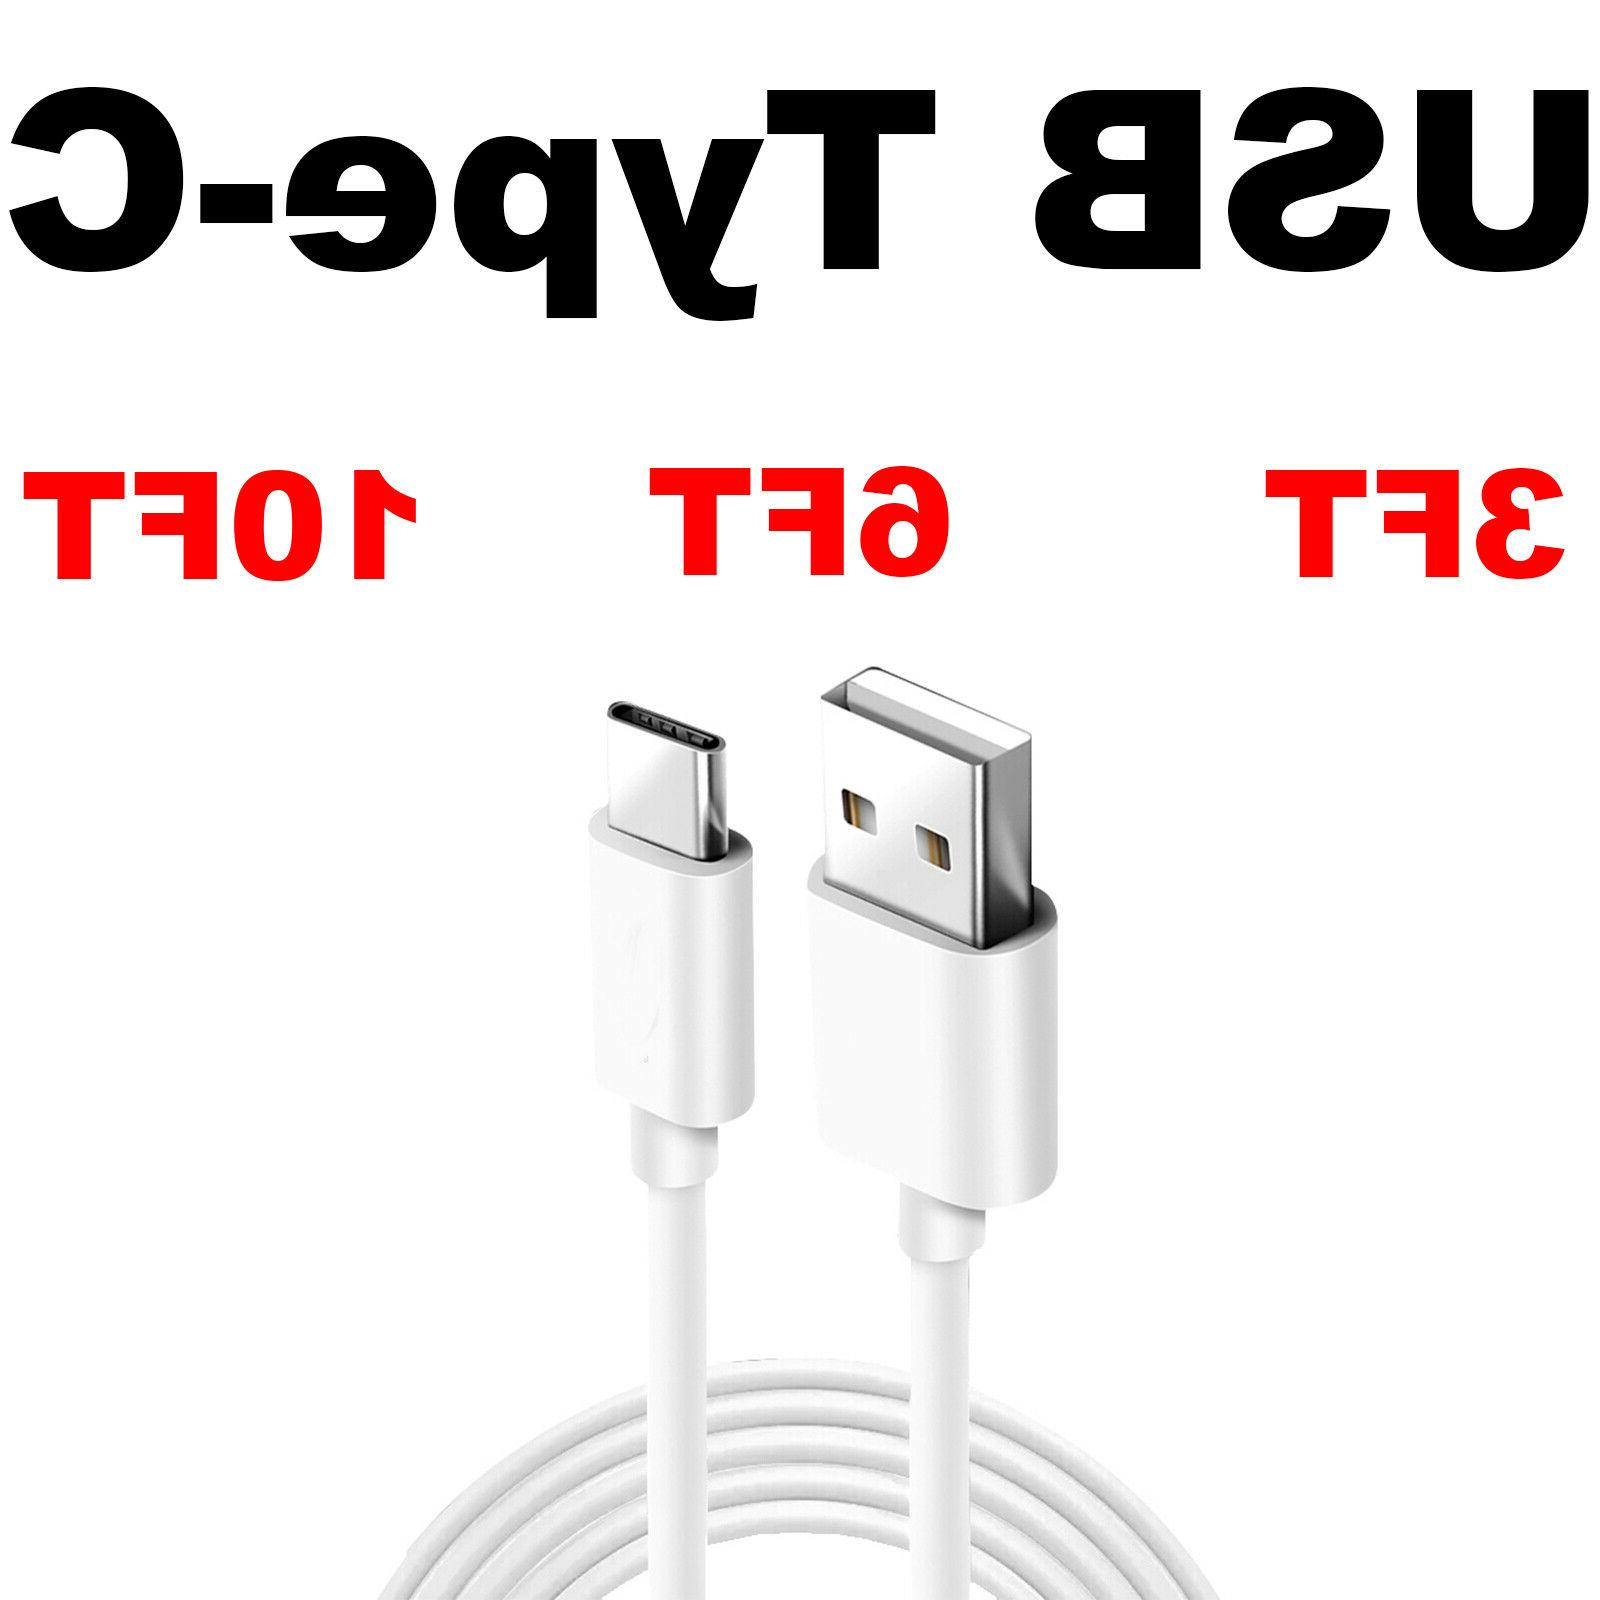 fast usb c cable charger cord type